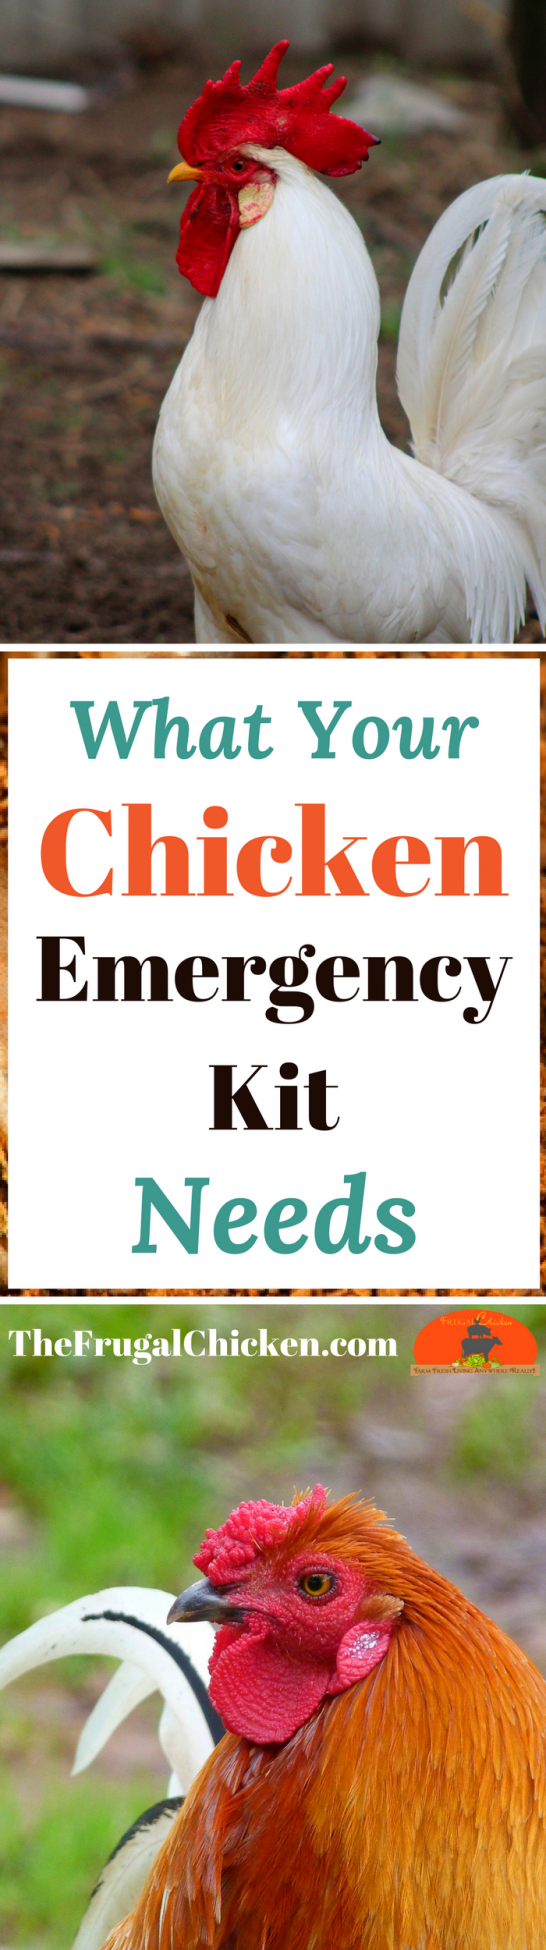 If you have chickens eventually they will need first aid ...